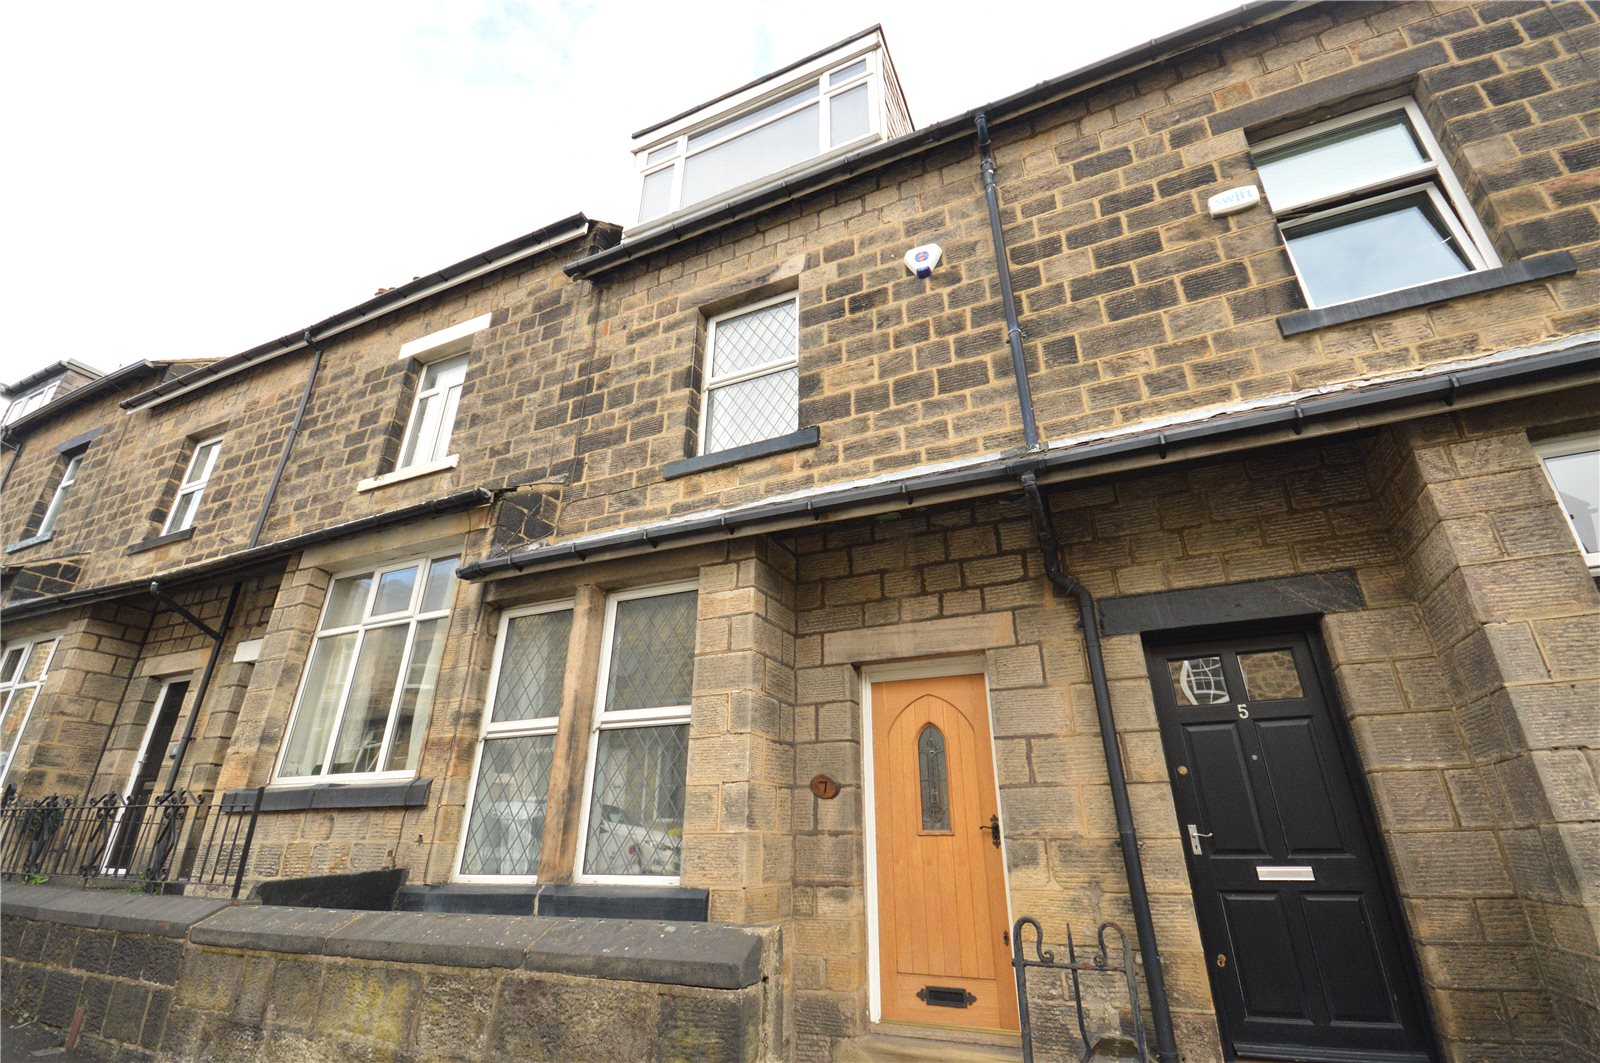 property for sale in horsforth, exterior of home